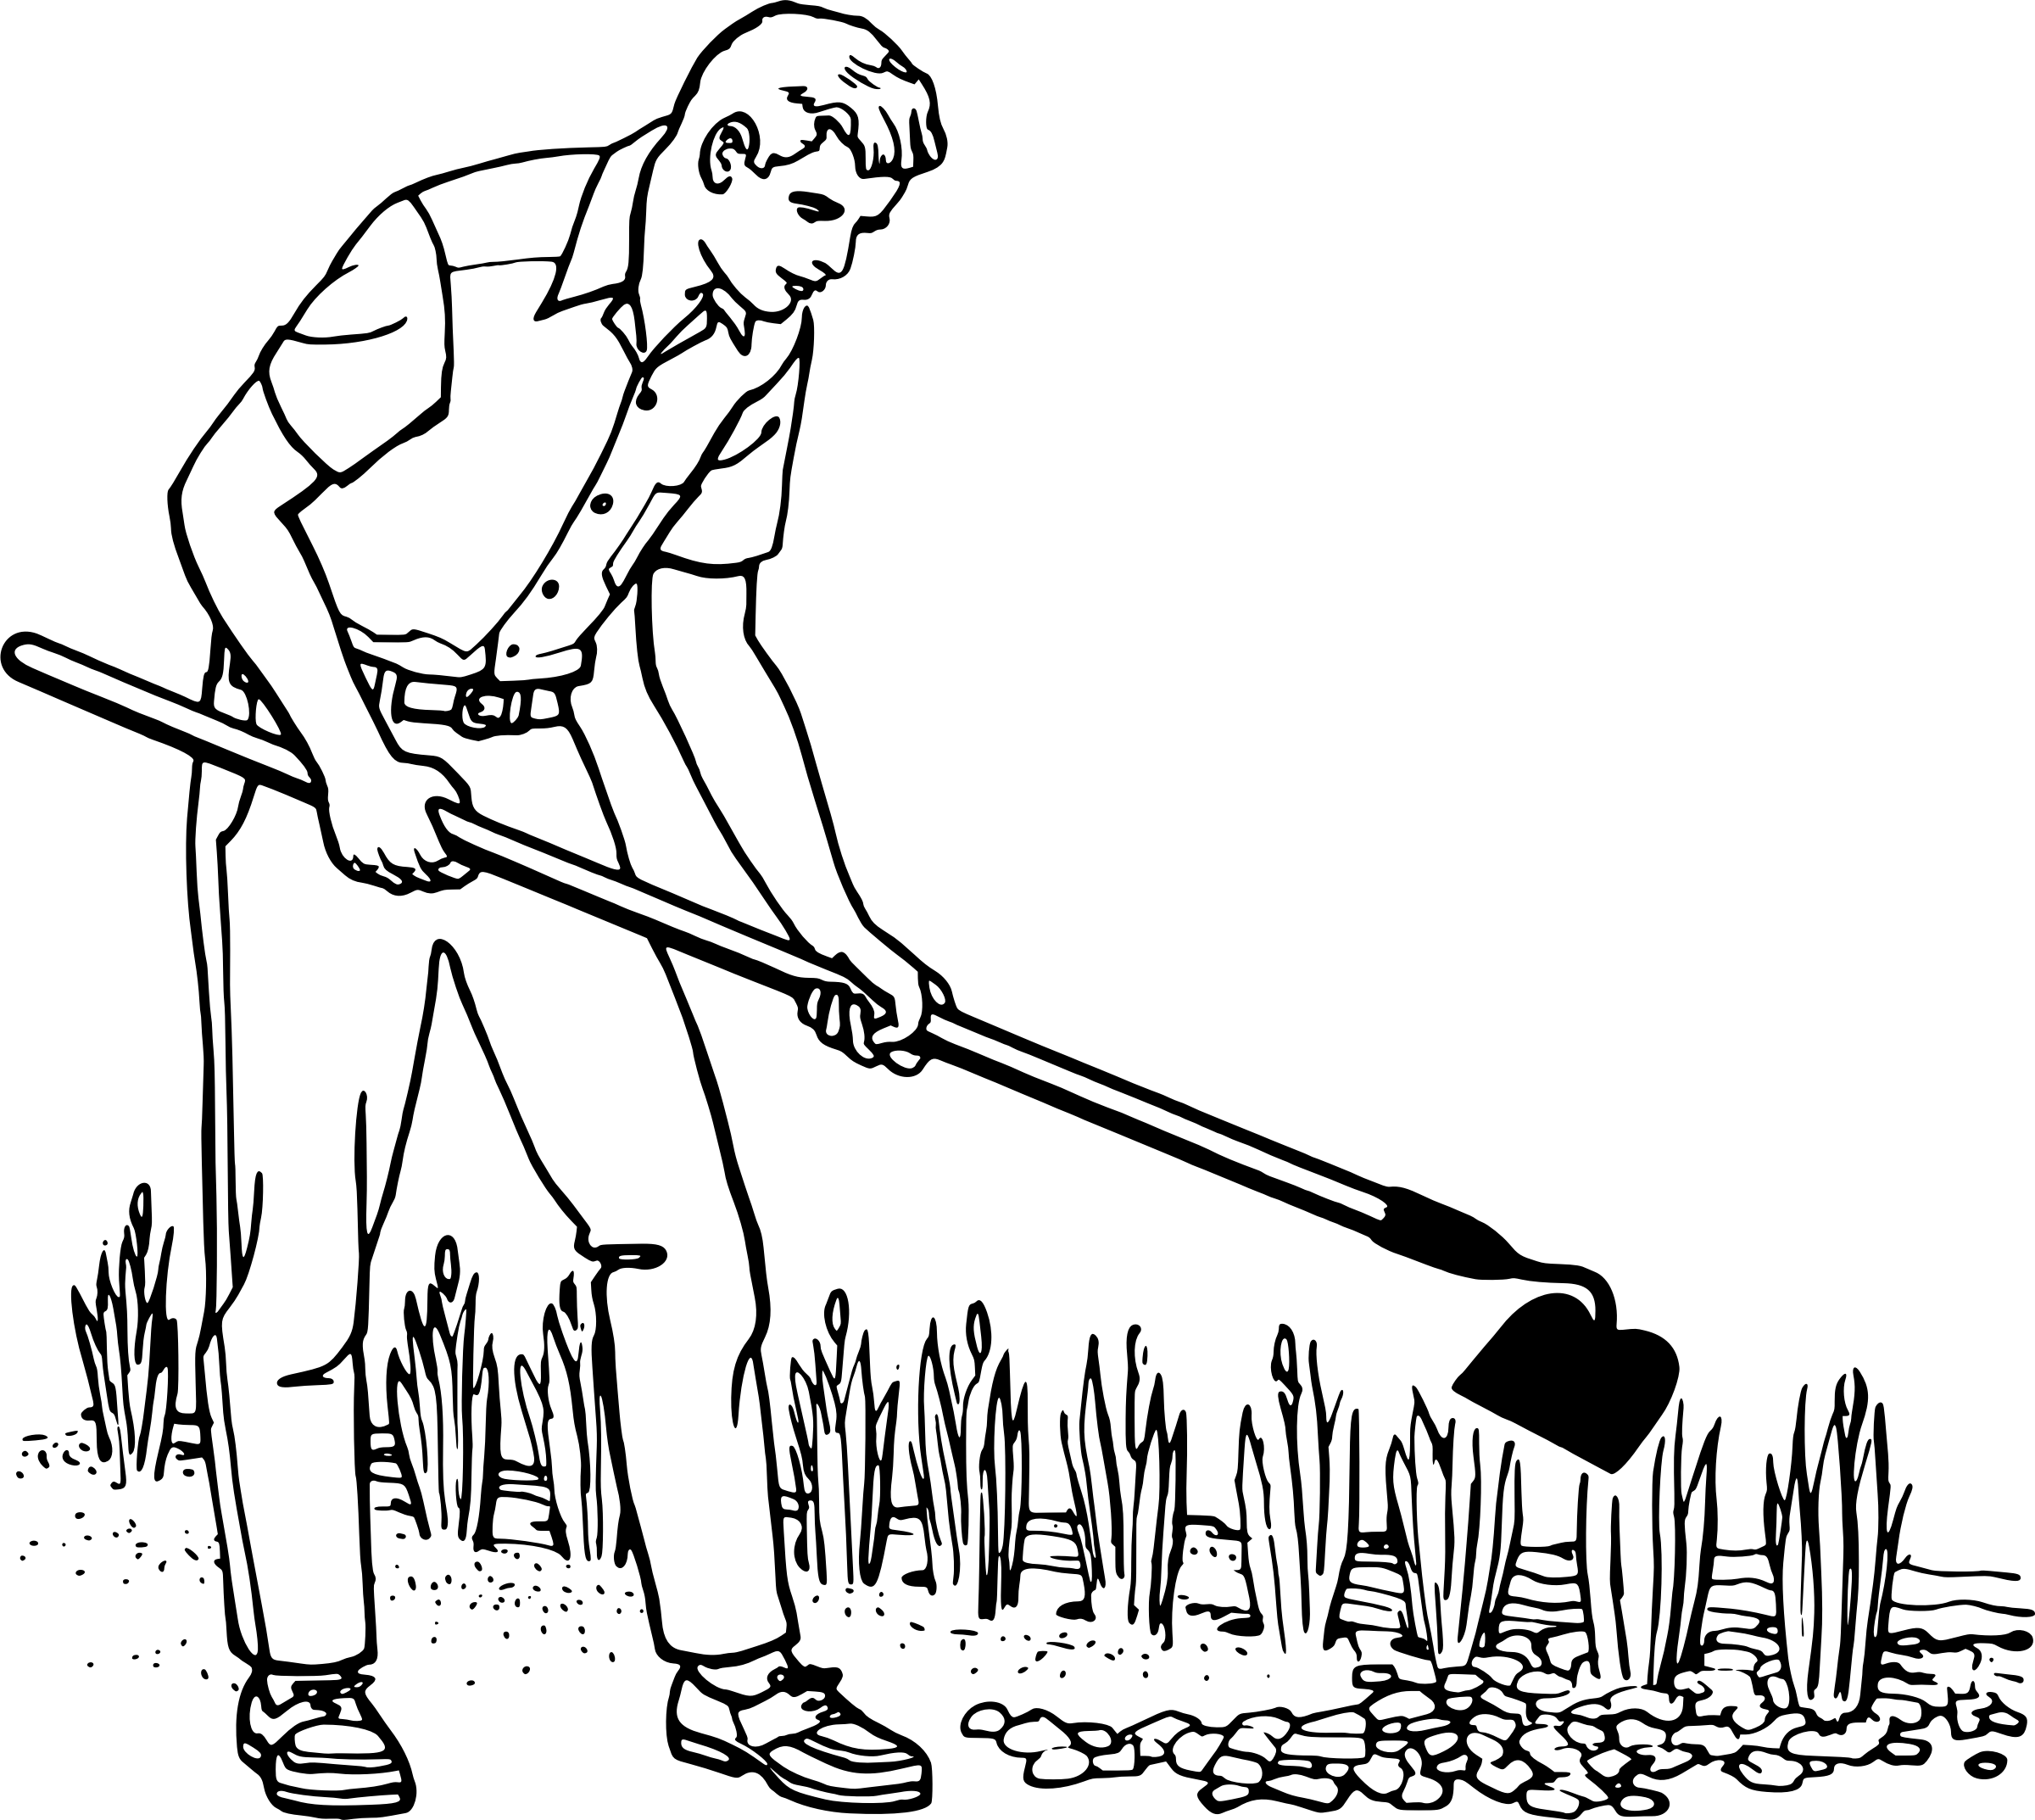 Library Of Man Gardening Picture Transparent Files